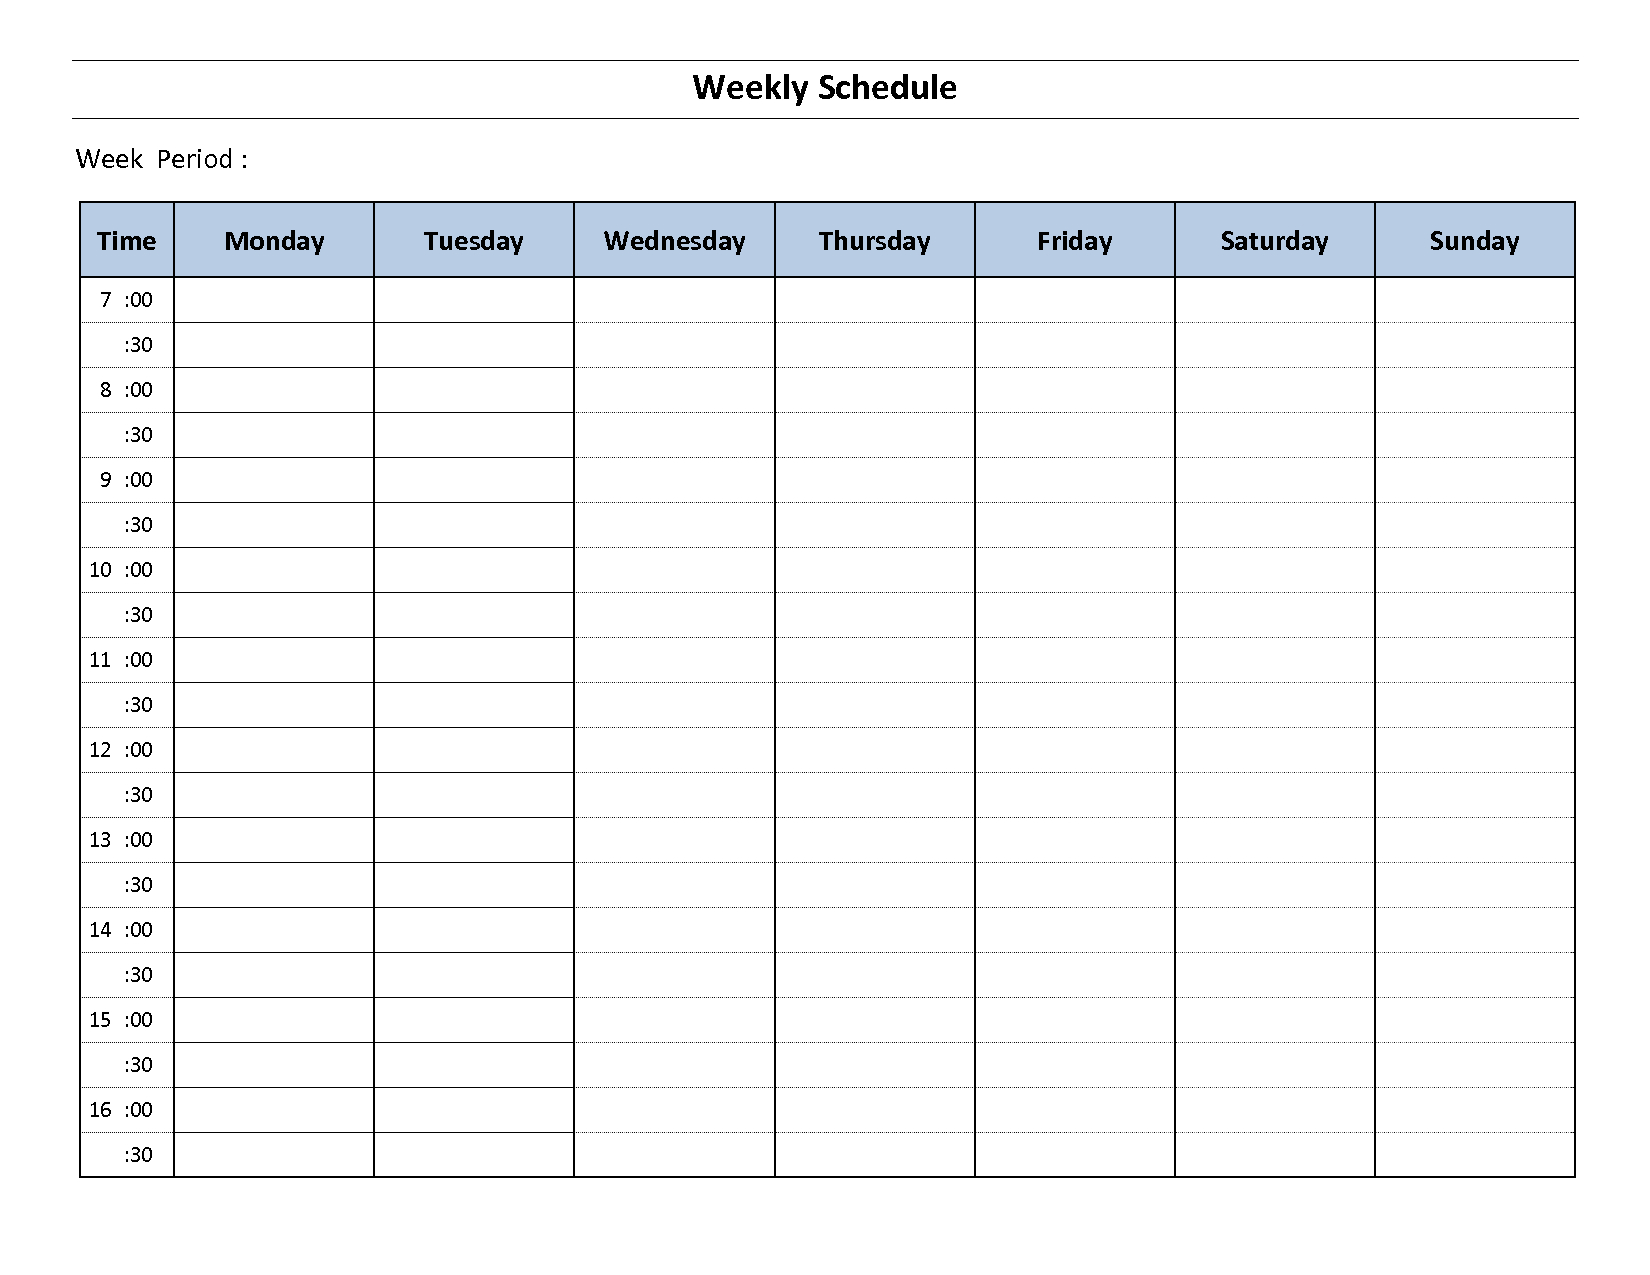 Construction Schedule Template Excel Free Download | Excel Templates inside Weekly Schedule Template Free To Print